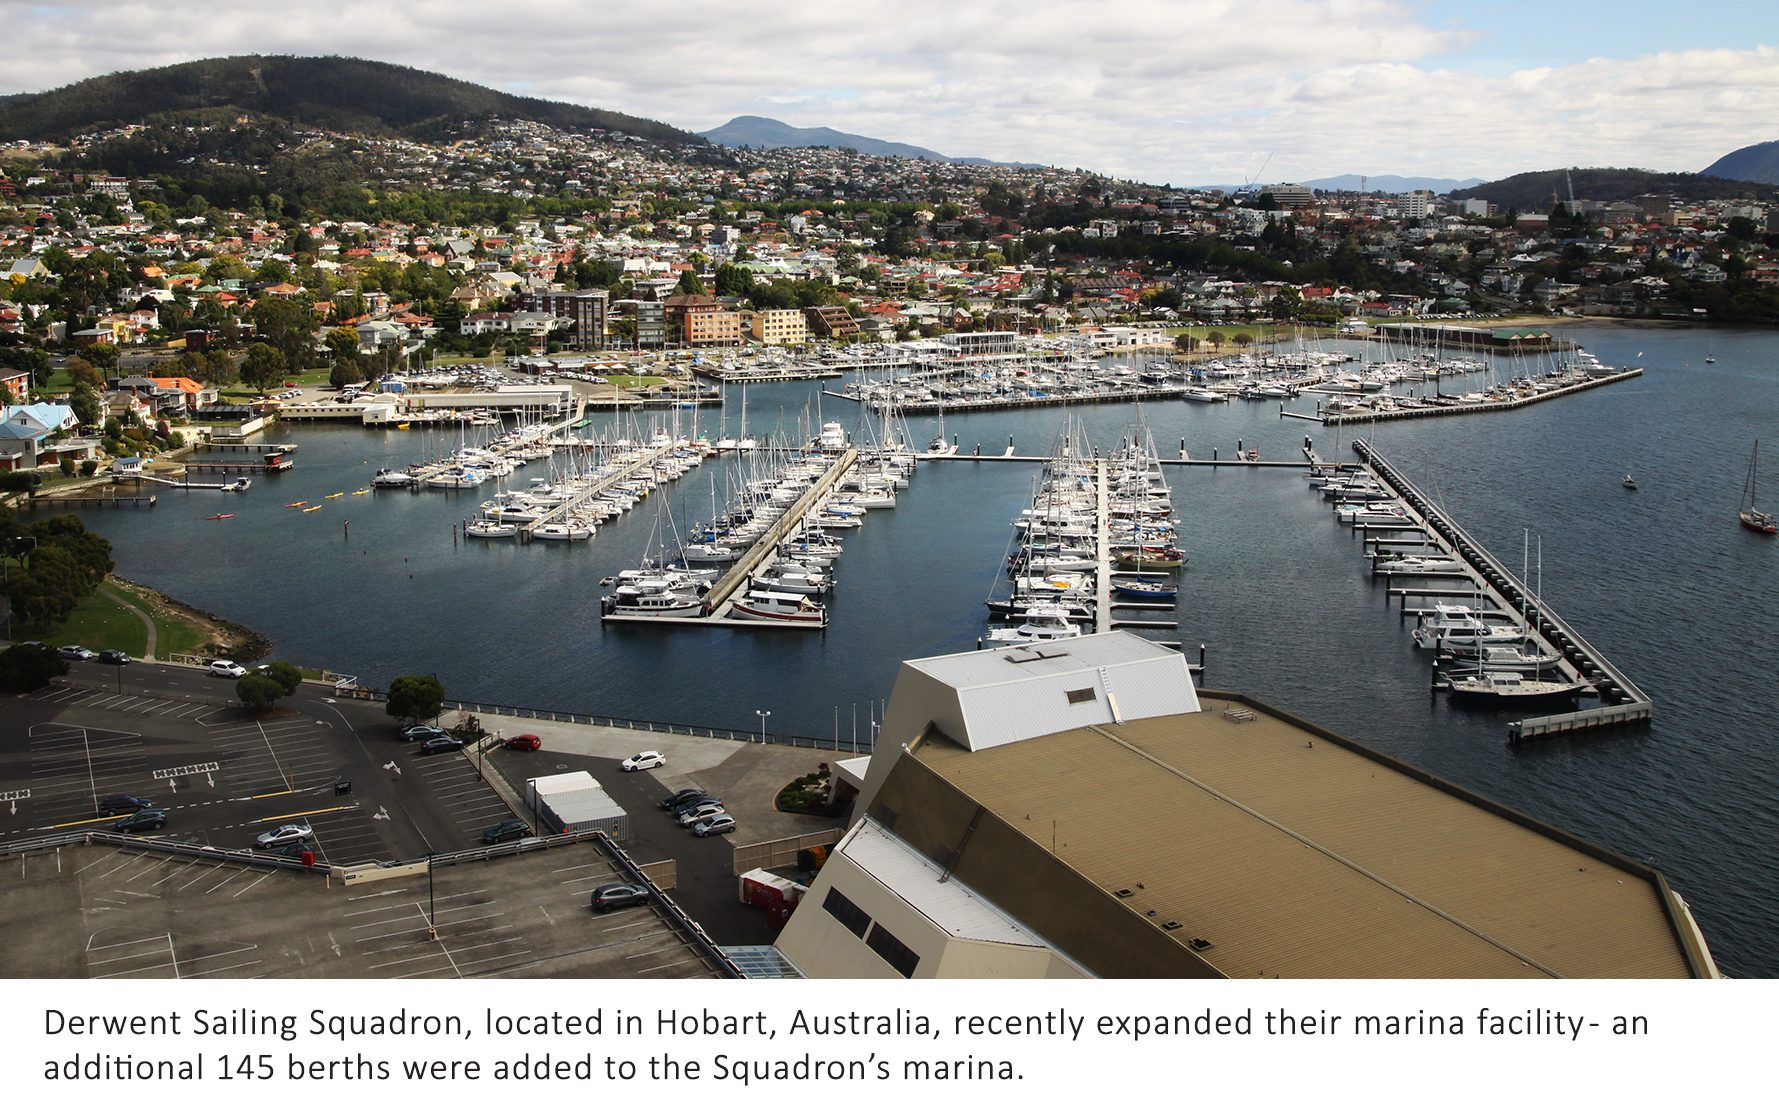 Bellingham Marine expands the marina at Derwent Sailing Squadron with concrete pontoons